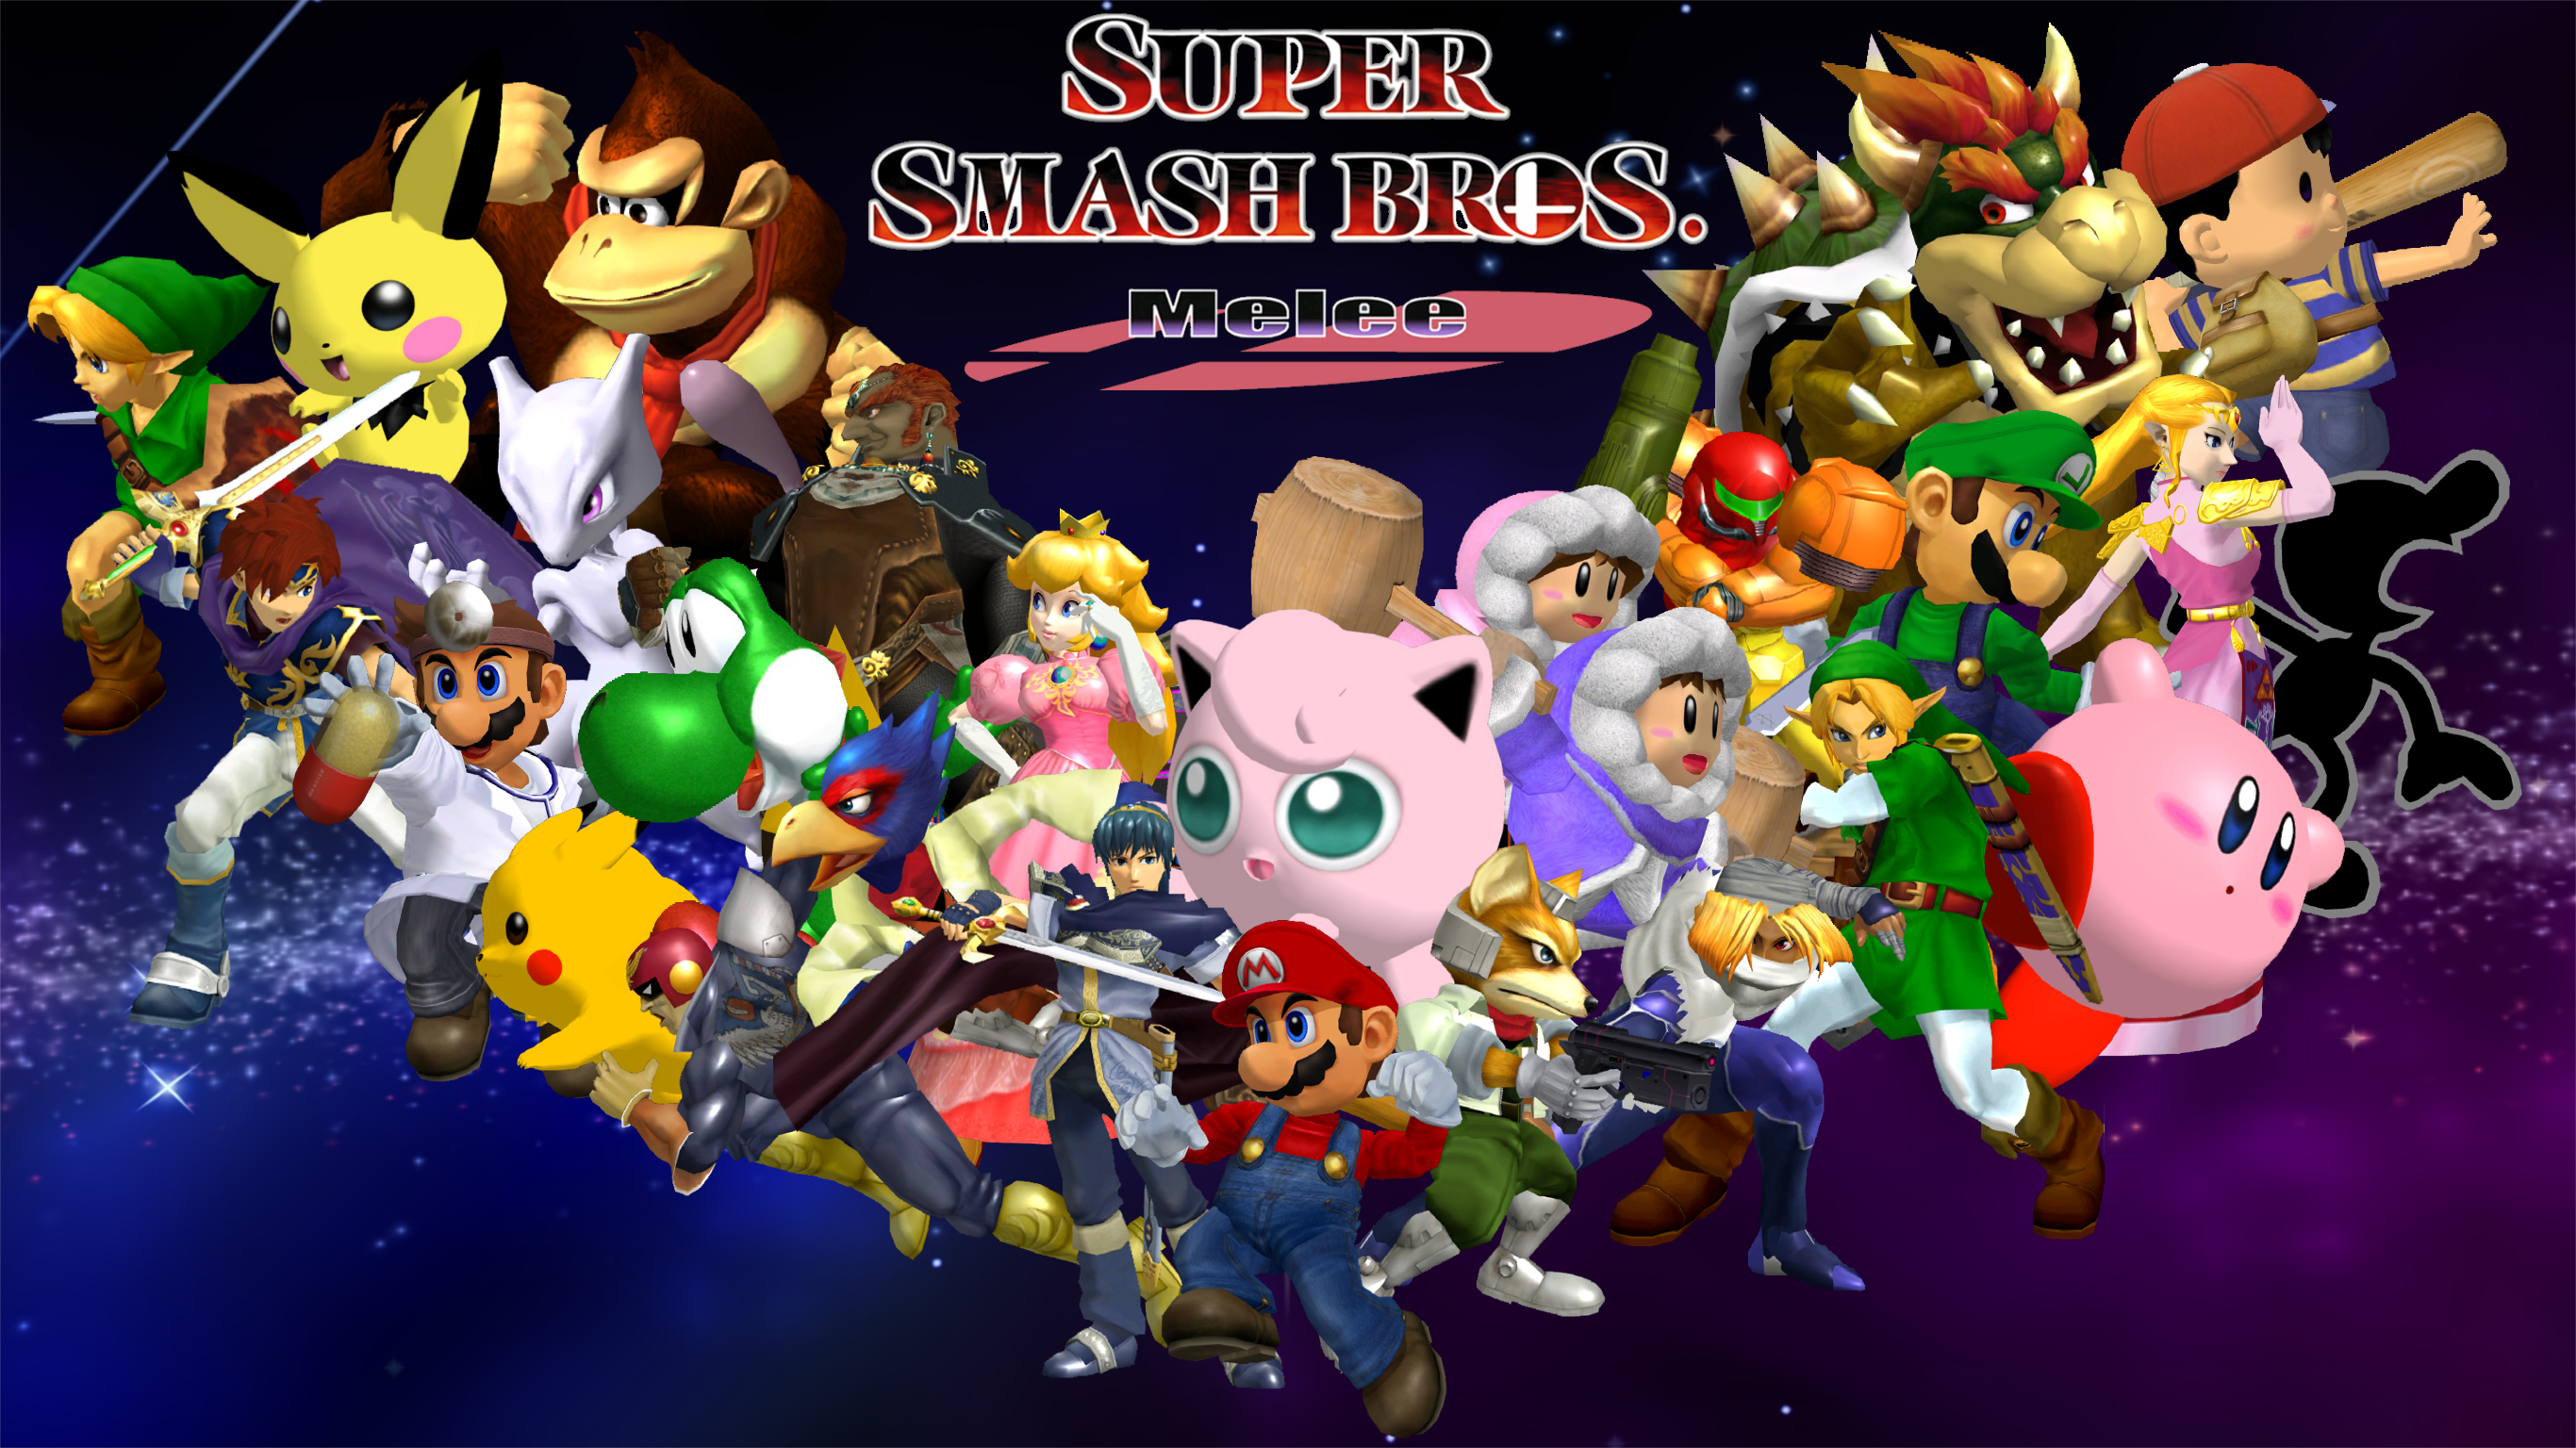 Super Smash Bros Melee Wallpaper By Game34rules On Deviantart